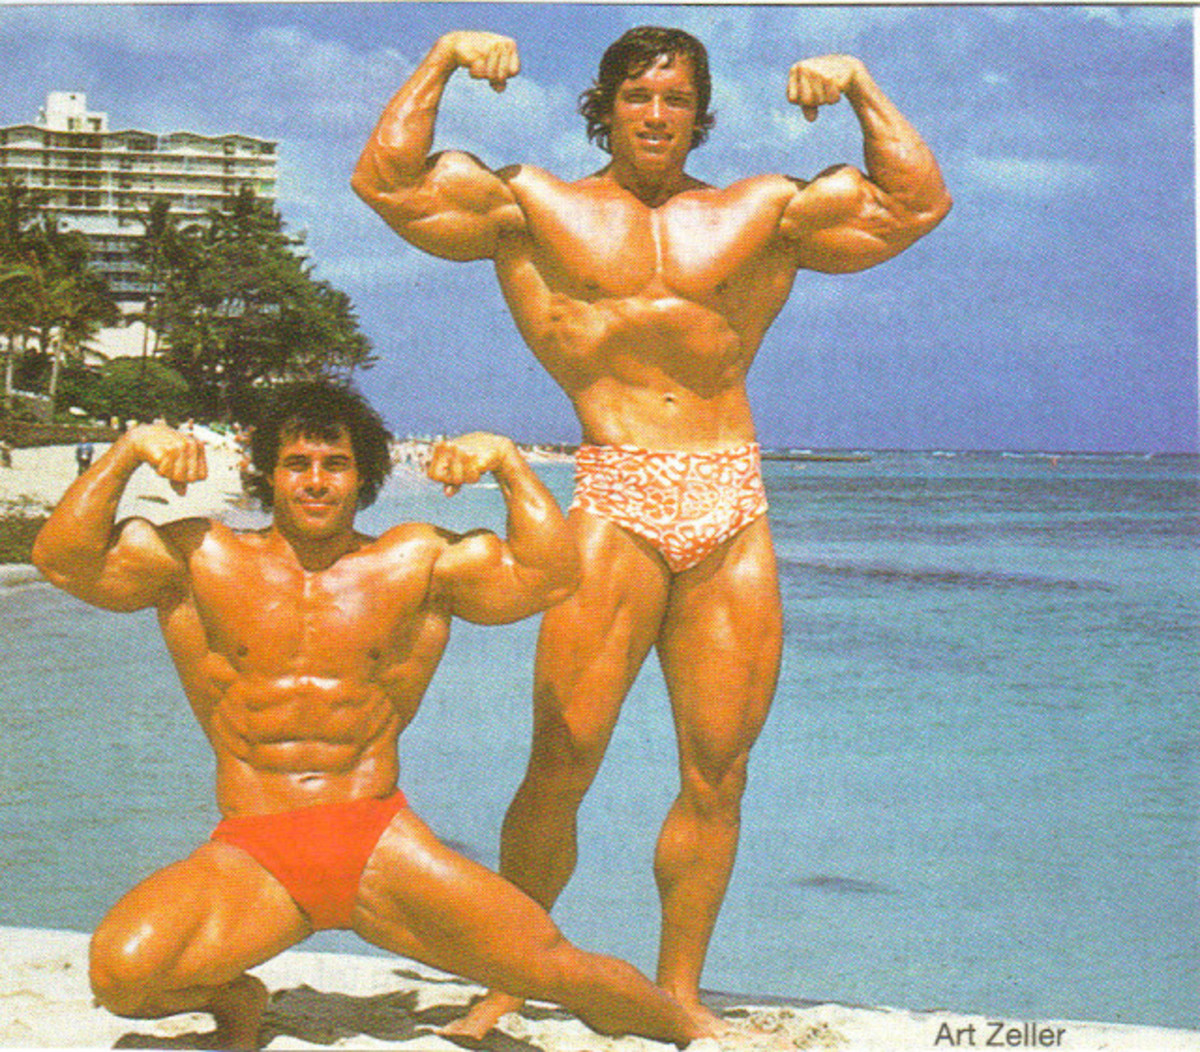 This picture is to enhance what is explained on the left in the text. On the right is Schwarzenegger and on the left is Franco Columbo who is Schwarzenegger's chiropractor now.